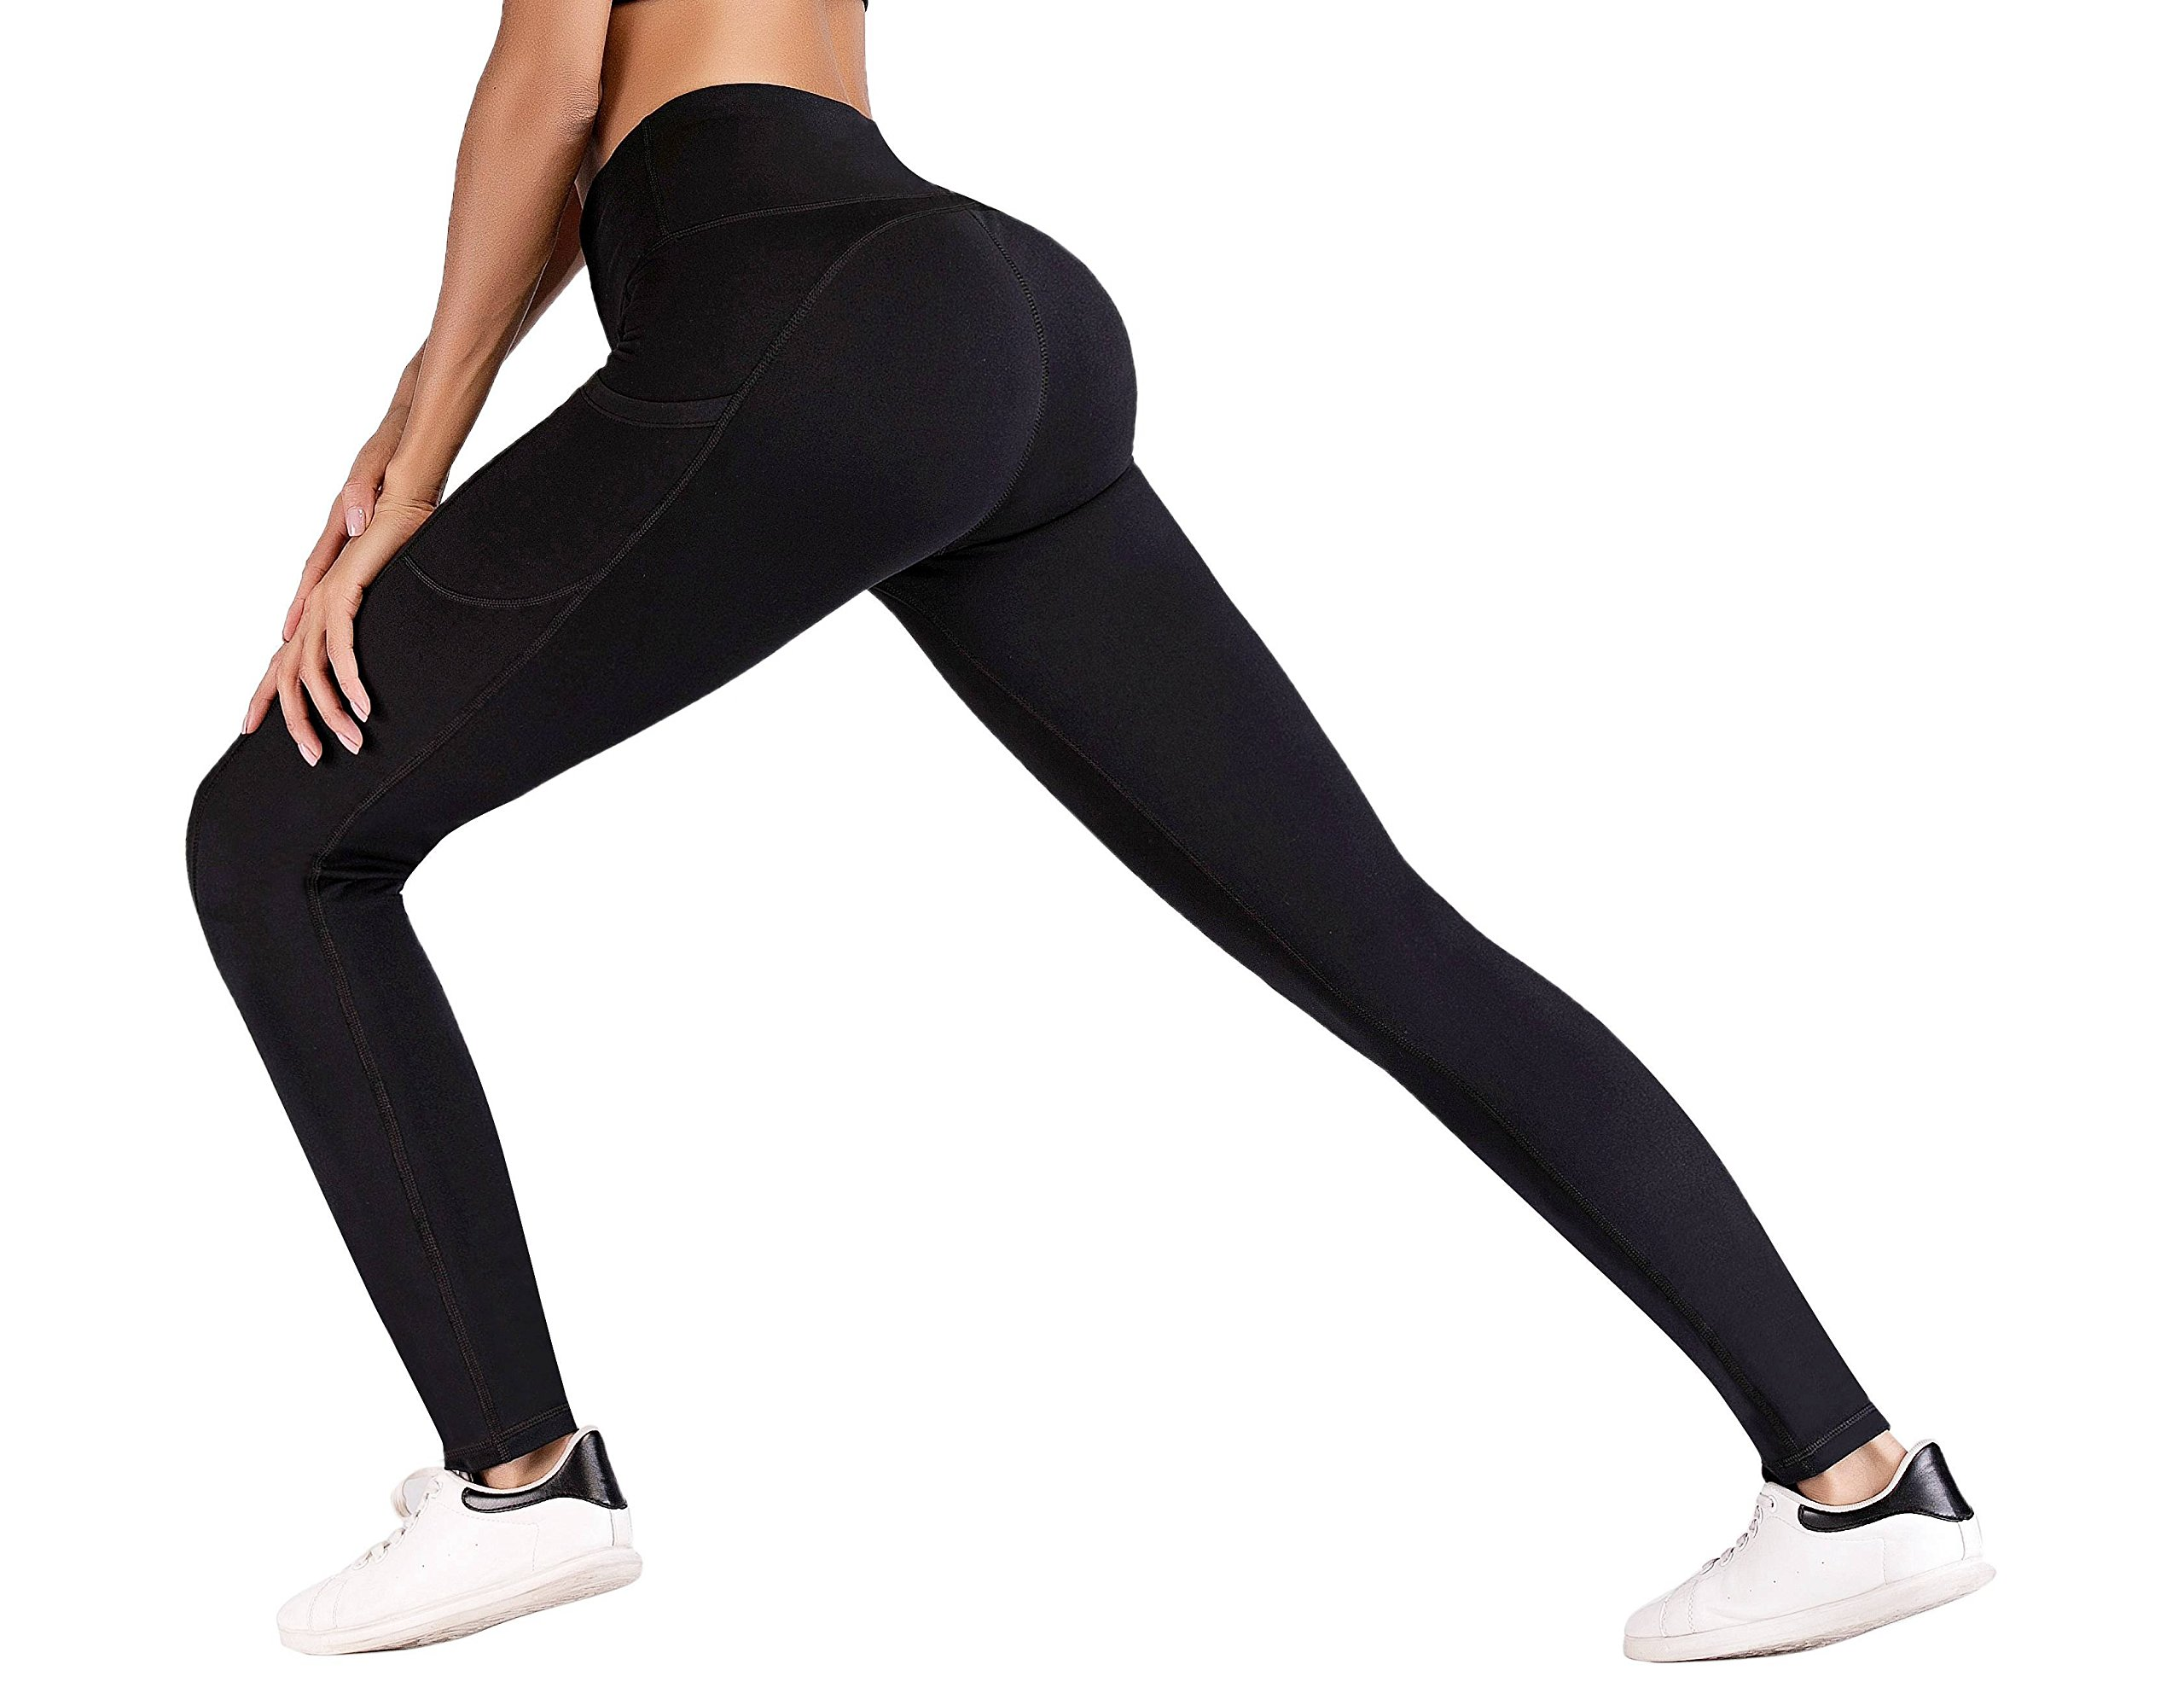 IUGA High Waist Yoga Pants with Pockets, Tummy Control, Workout Pants for Women 4 Way Stretch Yoga Leggings with Pockets by IUGA (Image #3)